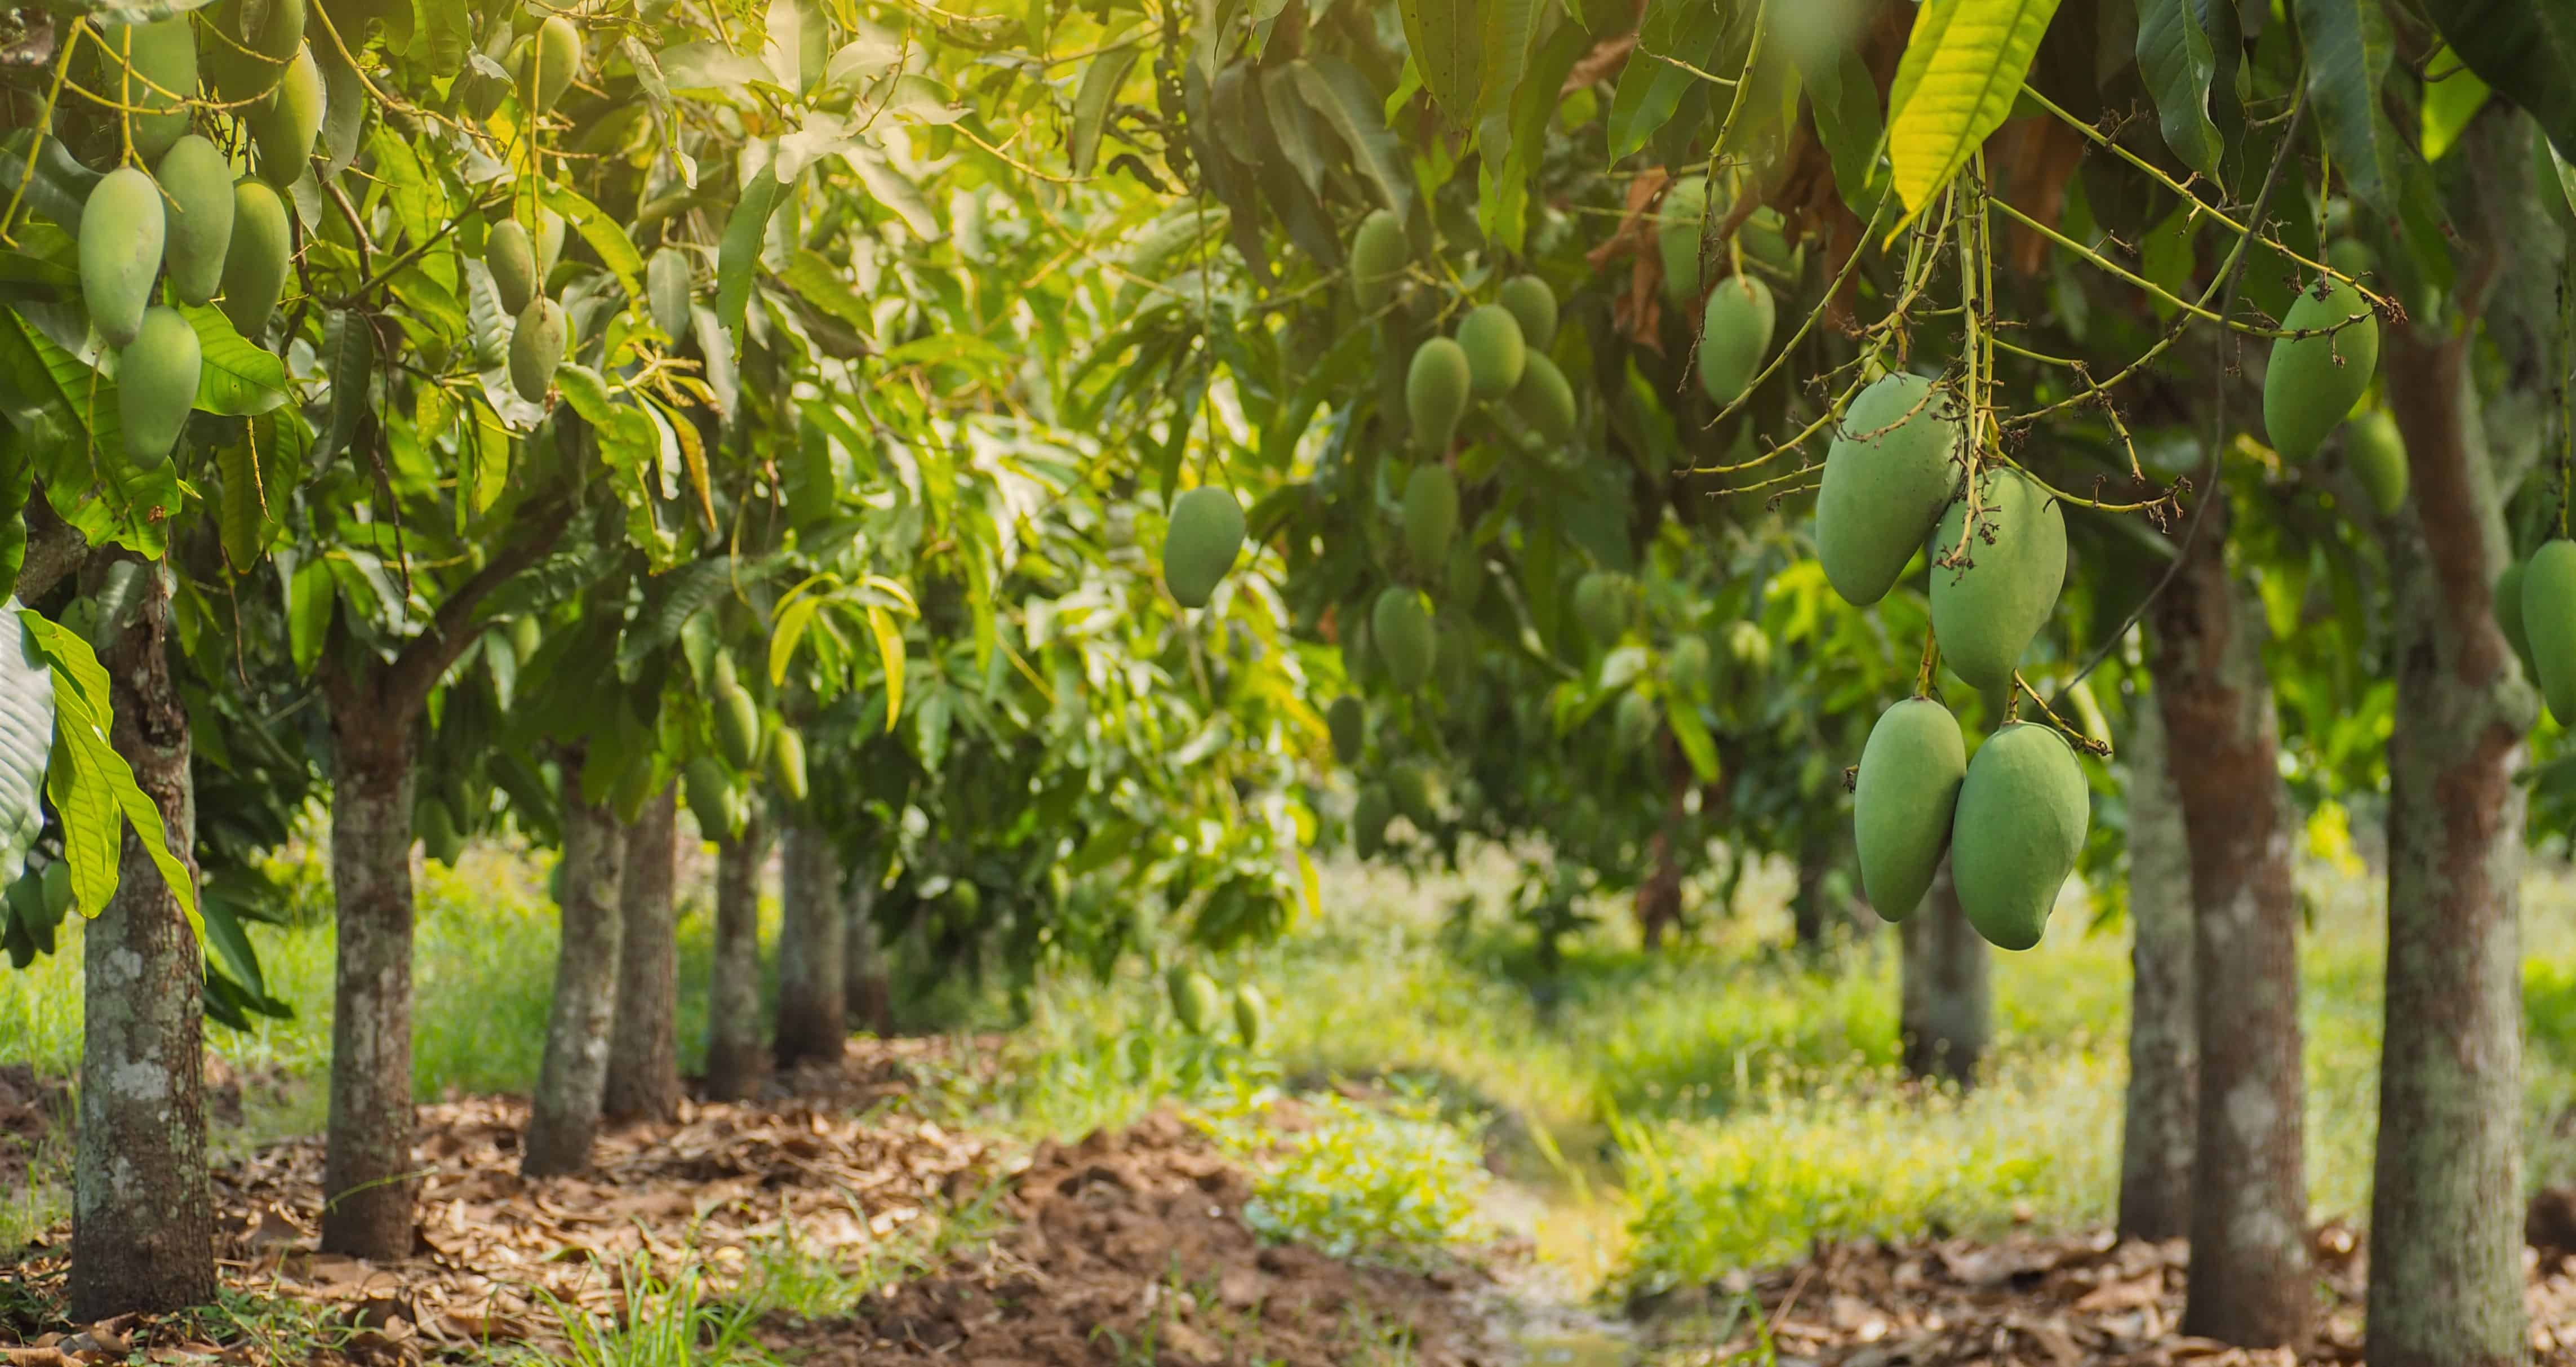 How to manage nutrient application in mango cultivation?